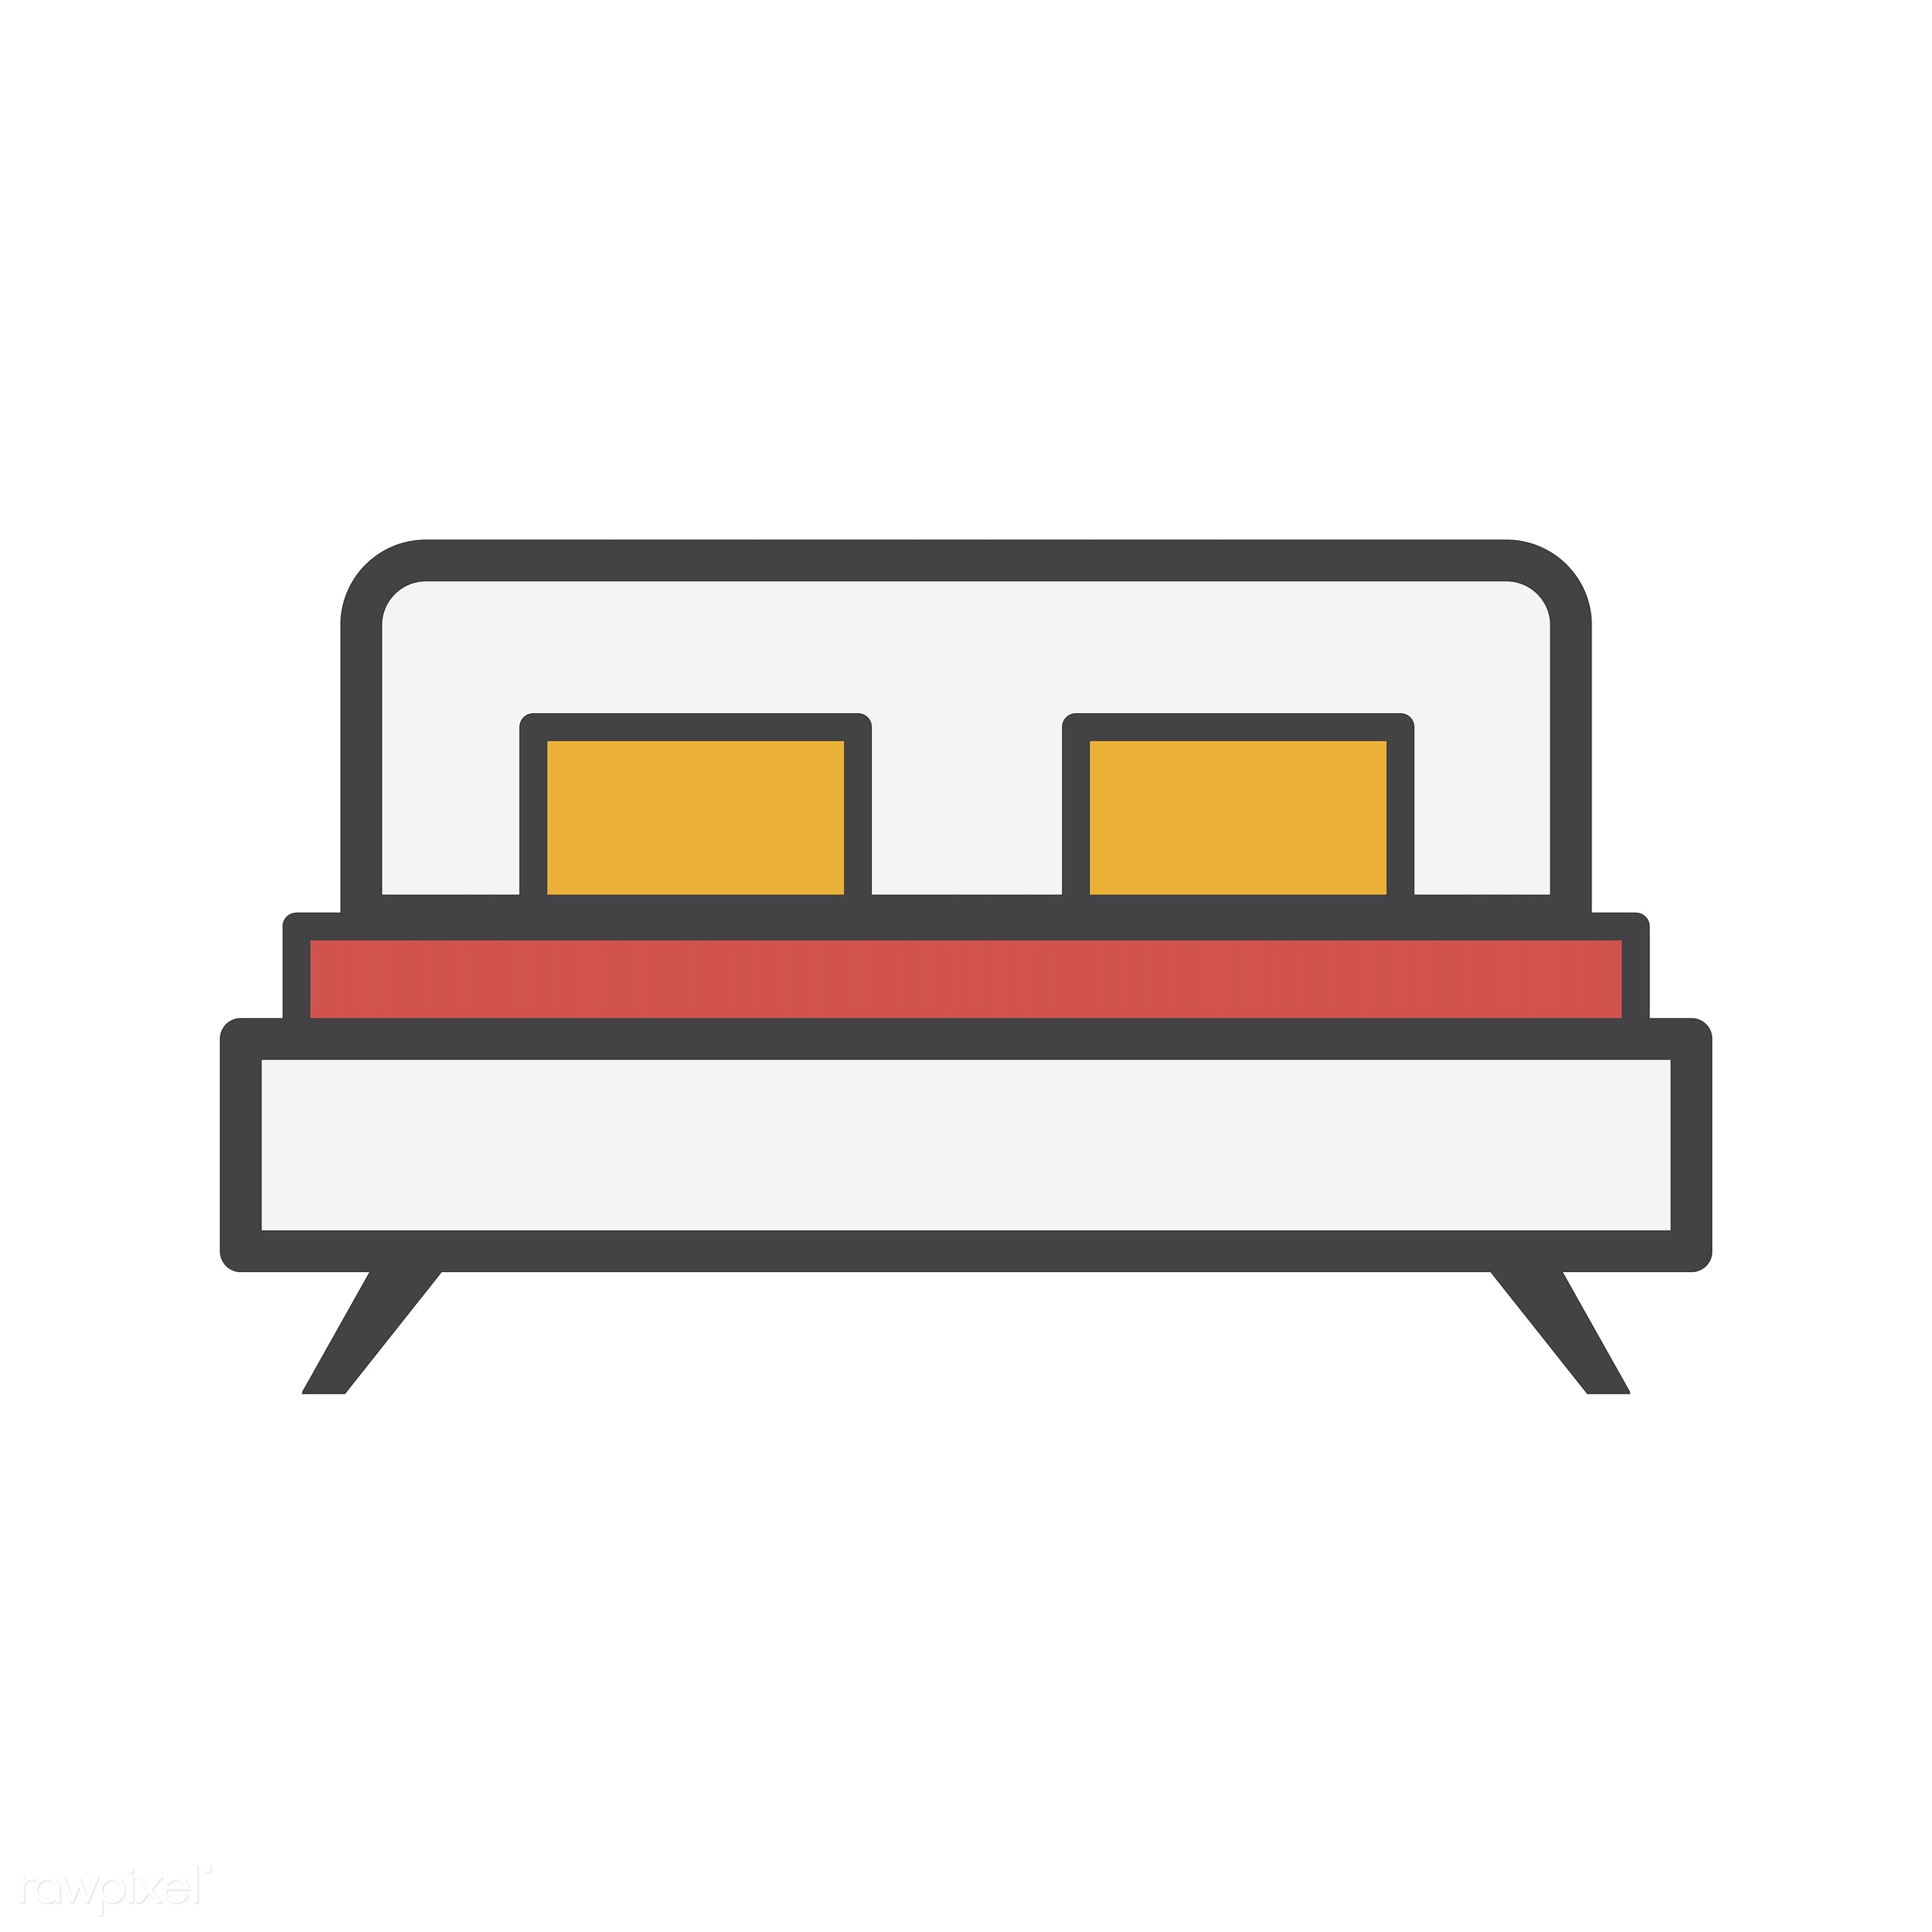 bed, abode, adults, comfort, cozy, dwelling, home, homely, house, household, living, pad, pilows, residence, vector, warmth